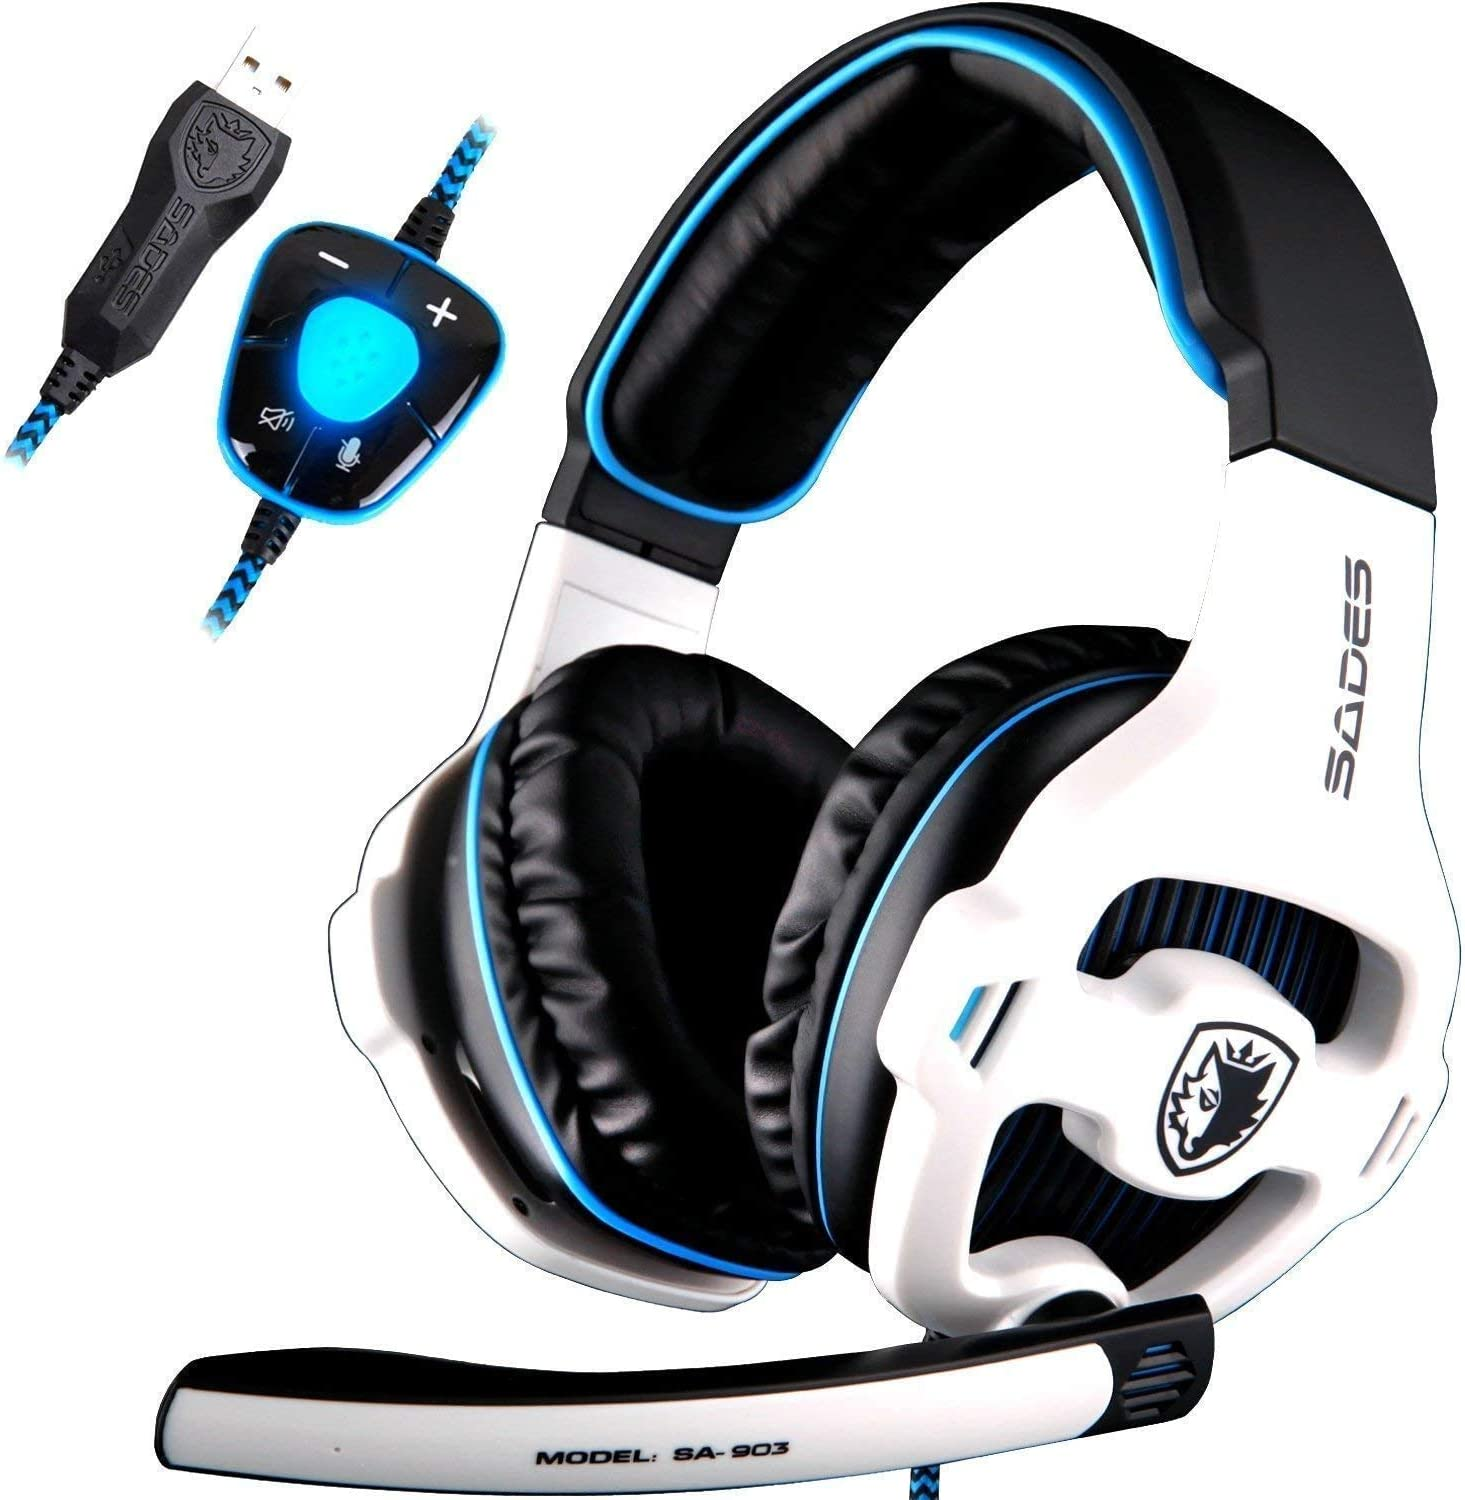 SADES USB 7.1 Stereo Surround Sound Gaming Headset with Mic LED Light, Noise Cancelling Gamer Headphones with Volume-Control for PC Mac Computer Games (White)